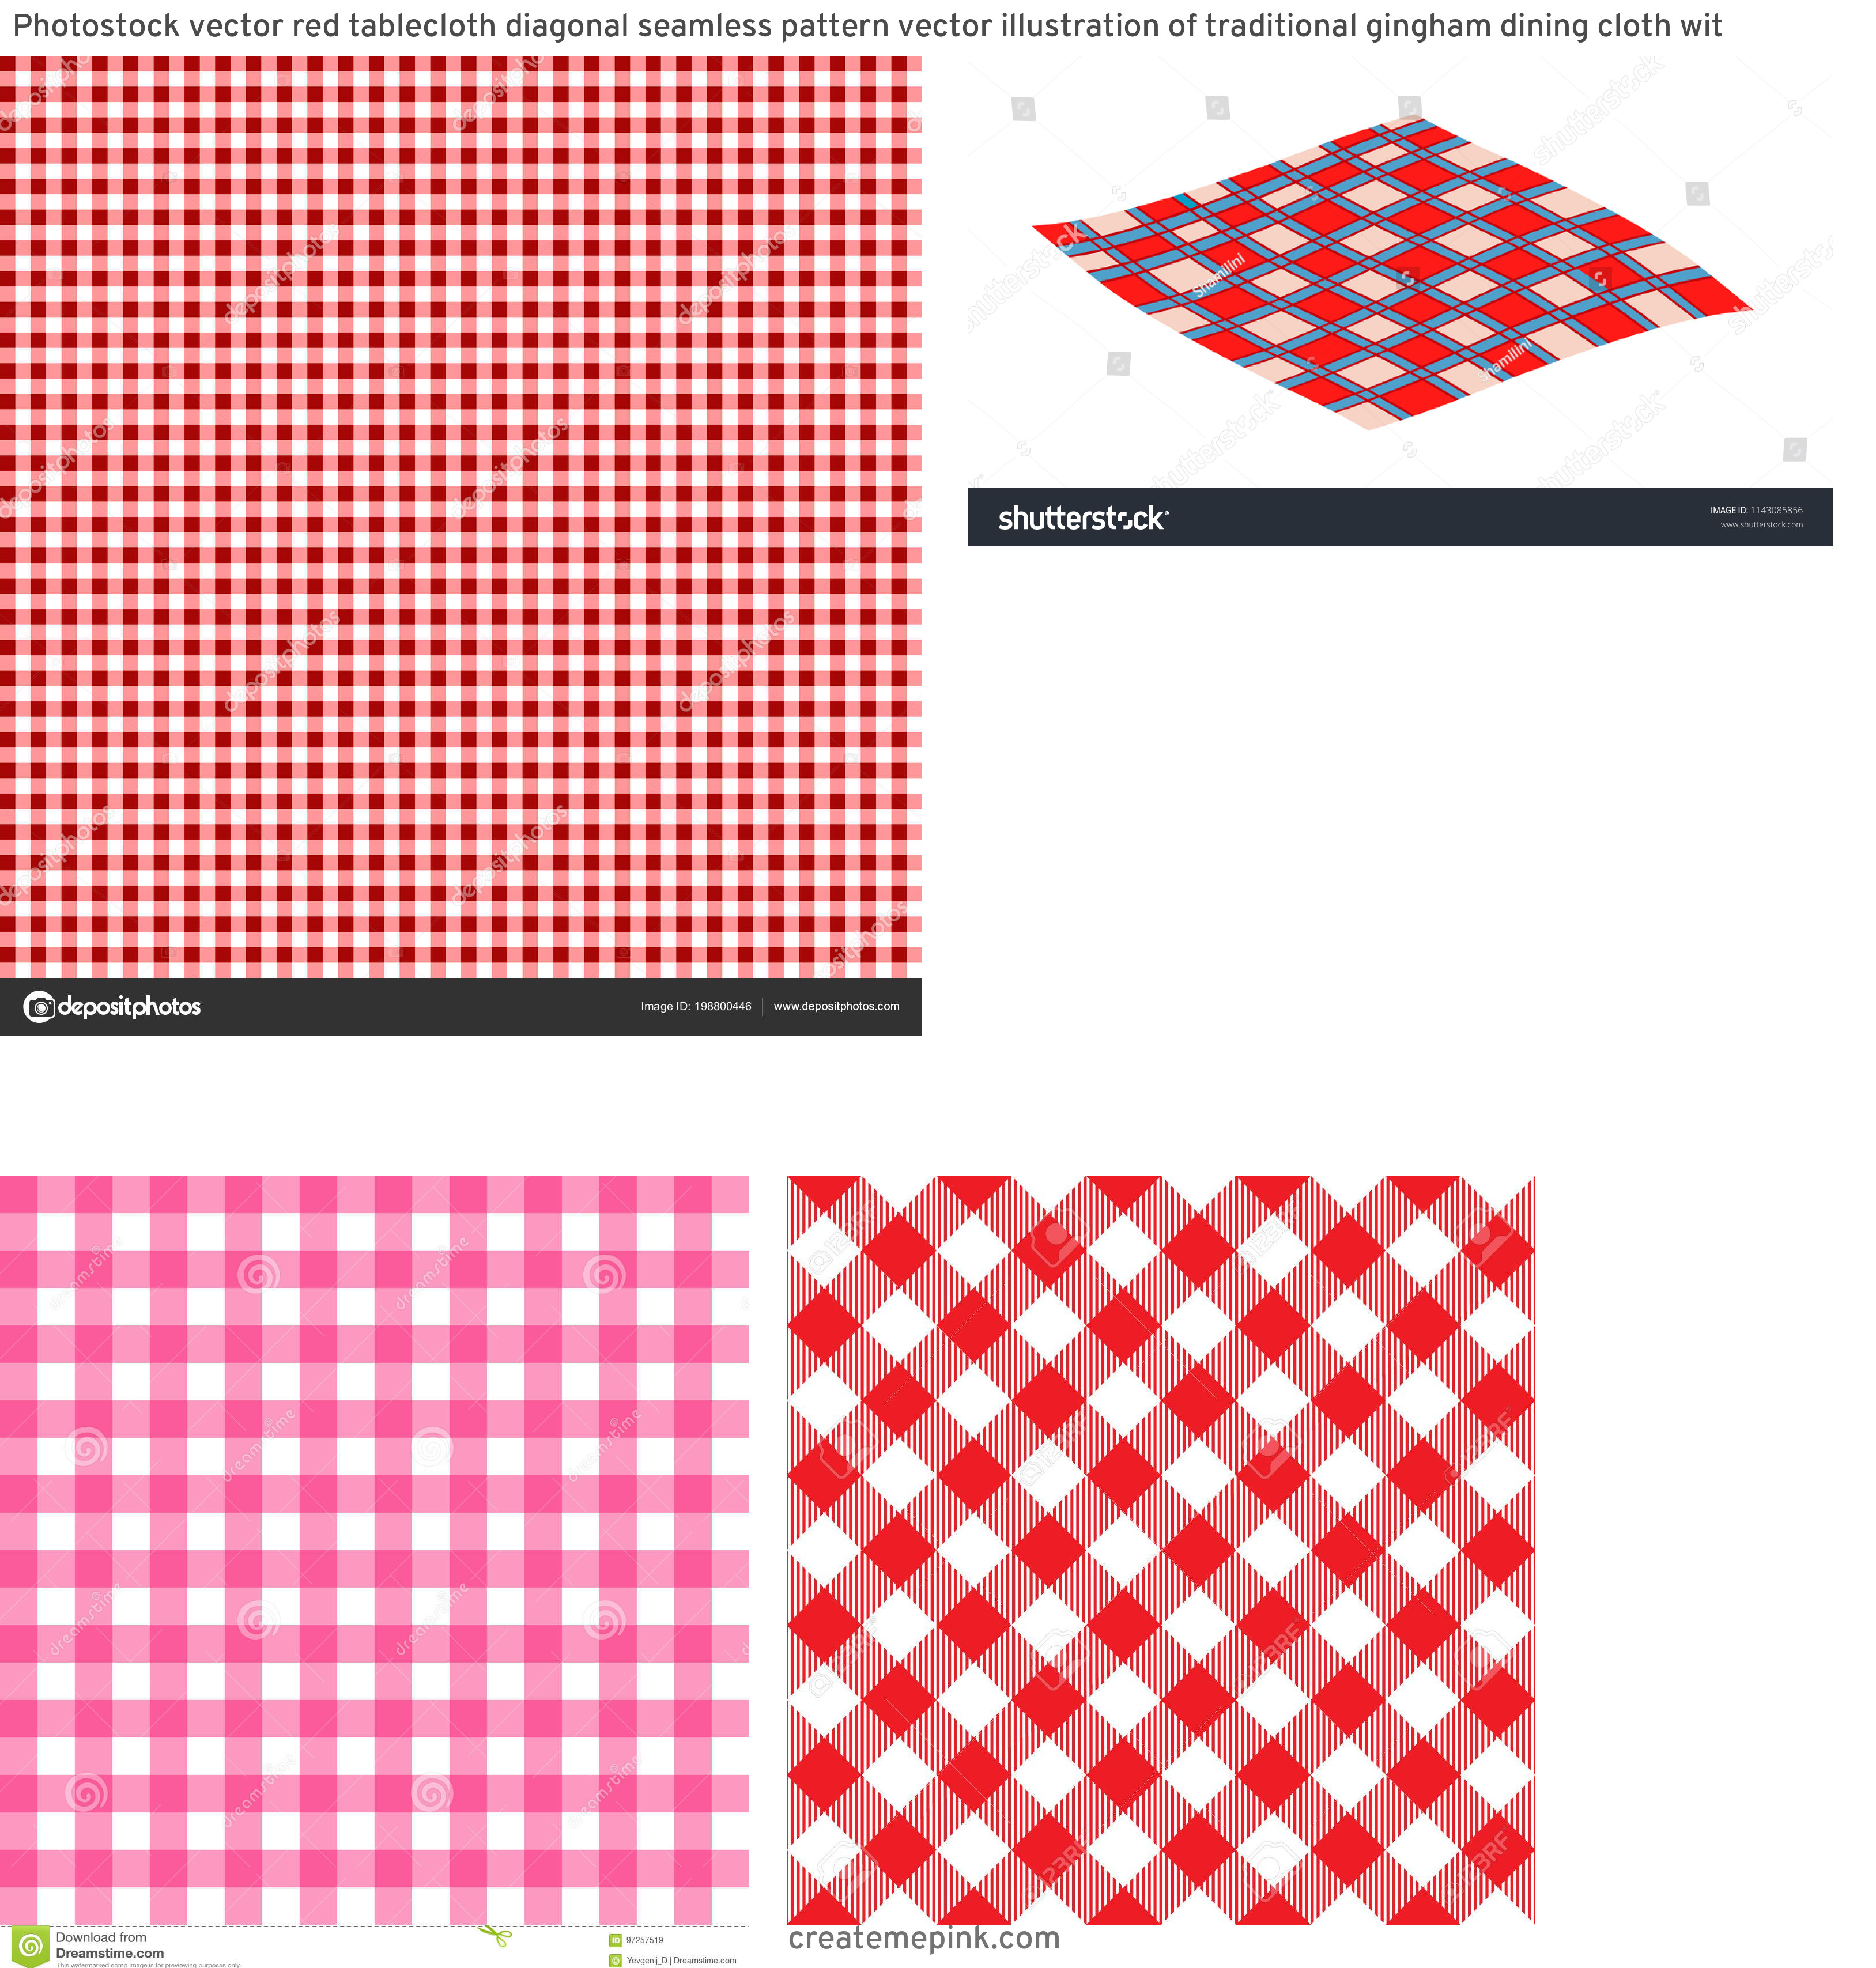 Picnic Cloth Vector: Photostock Vector Red Tablecloth Diagonal Seamless Pattern Vector Illustration Of Traditional Gingham Dining Cloth Wit